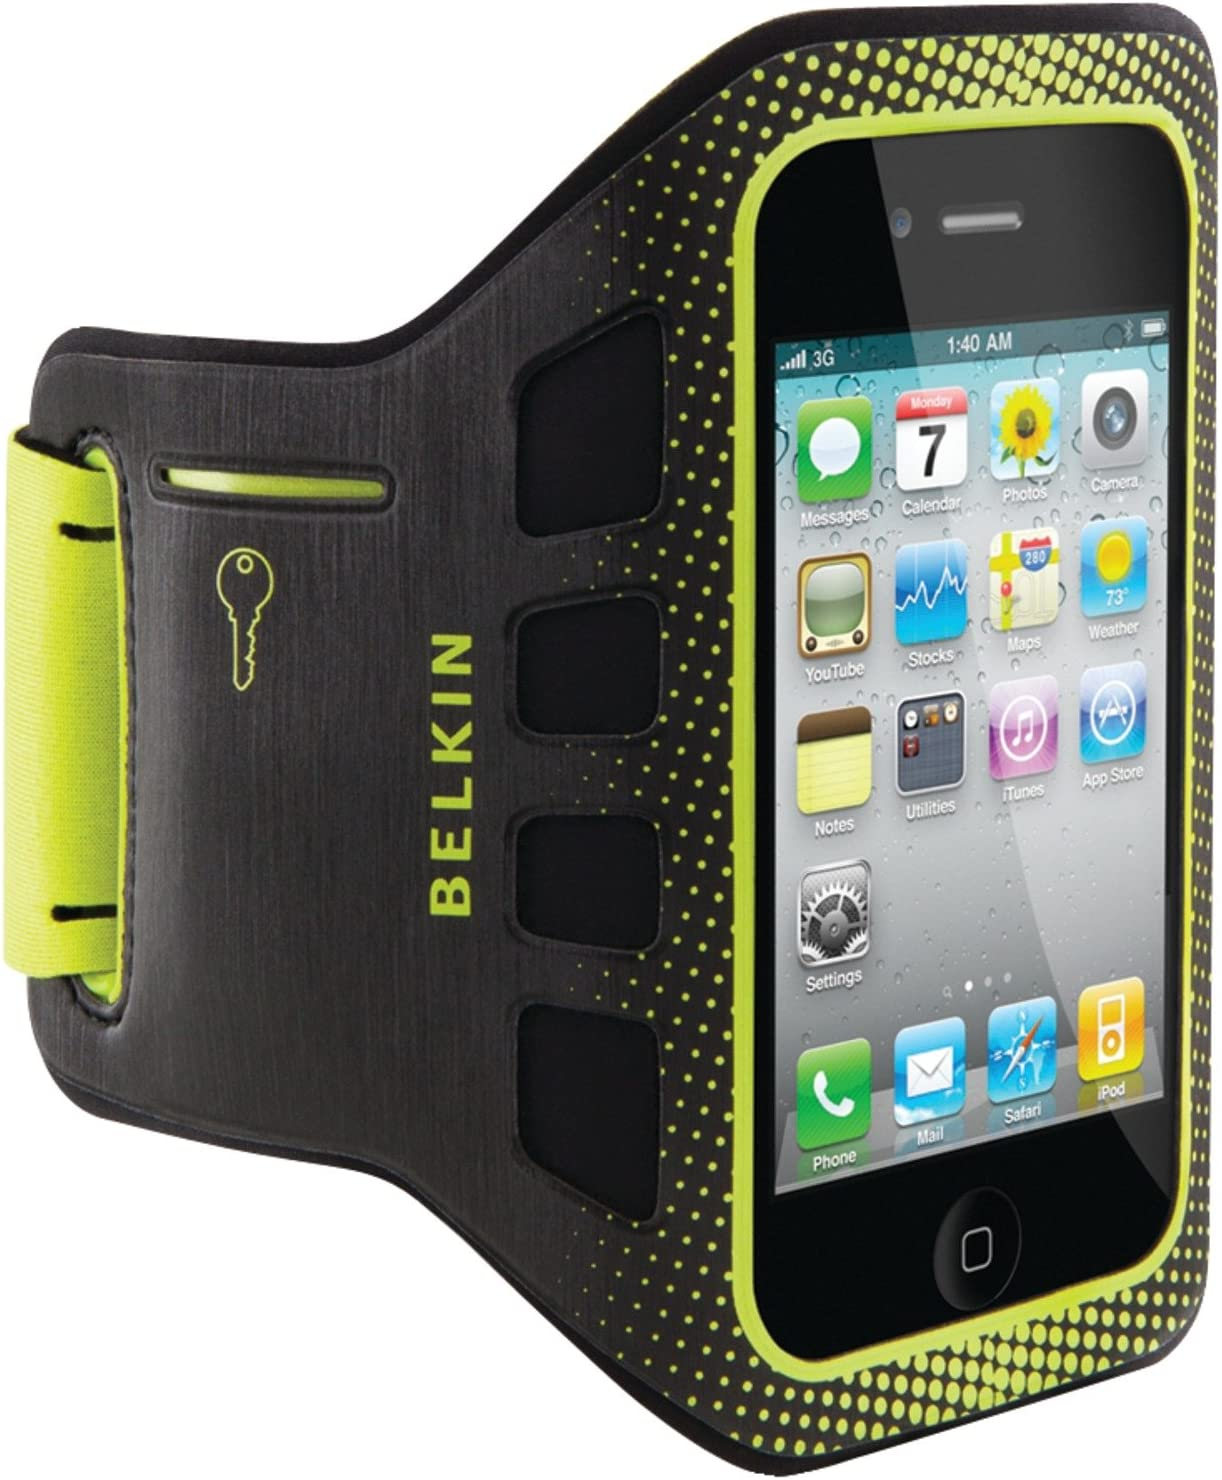 Belkin Ease-Fit Sport Armband for iPhone 4 and iPhone 4S (Black/Limelight)